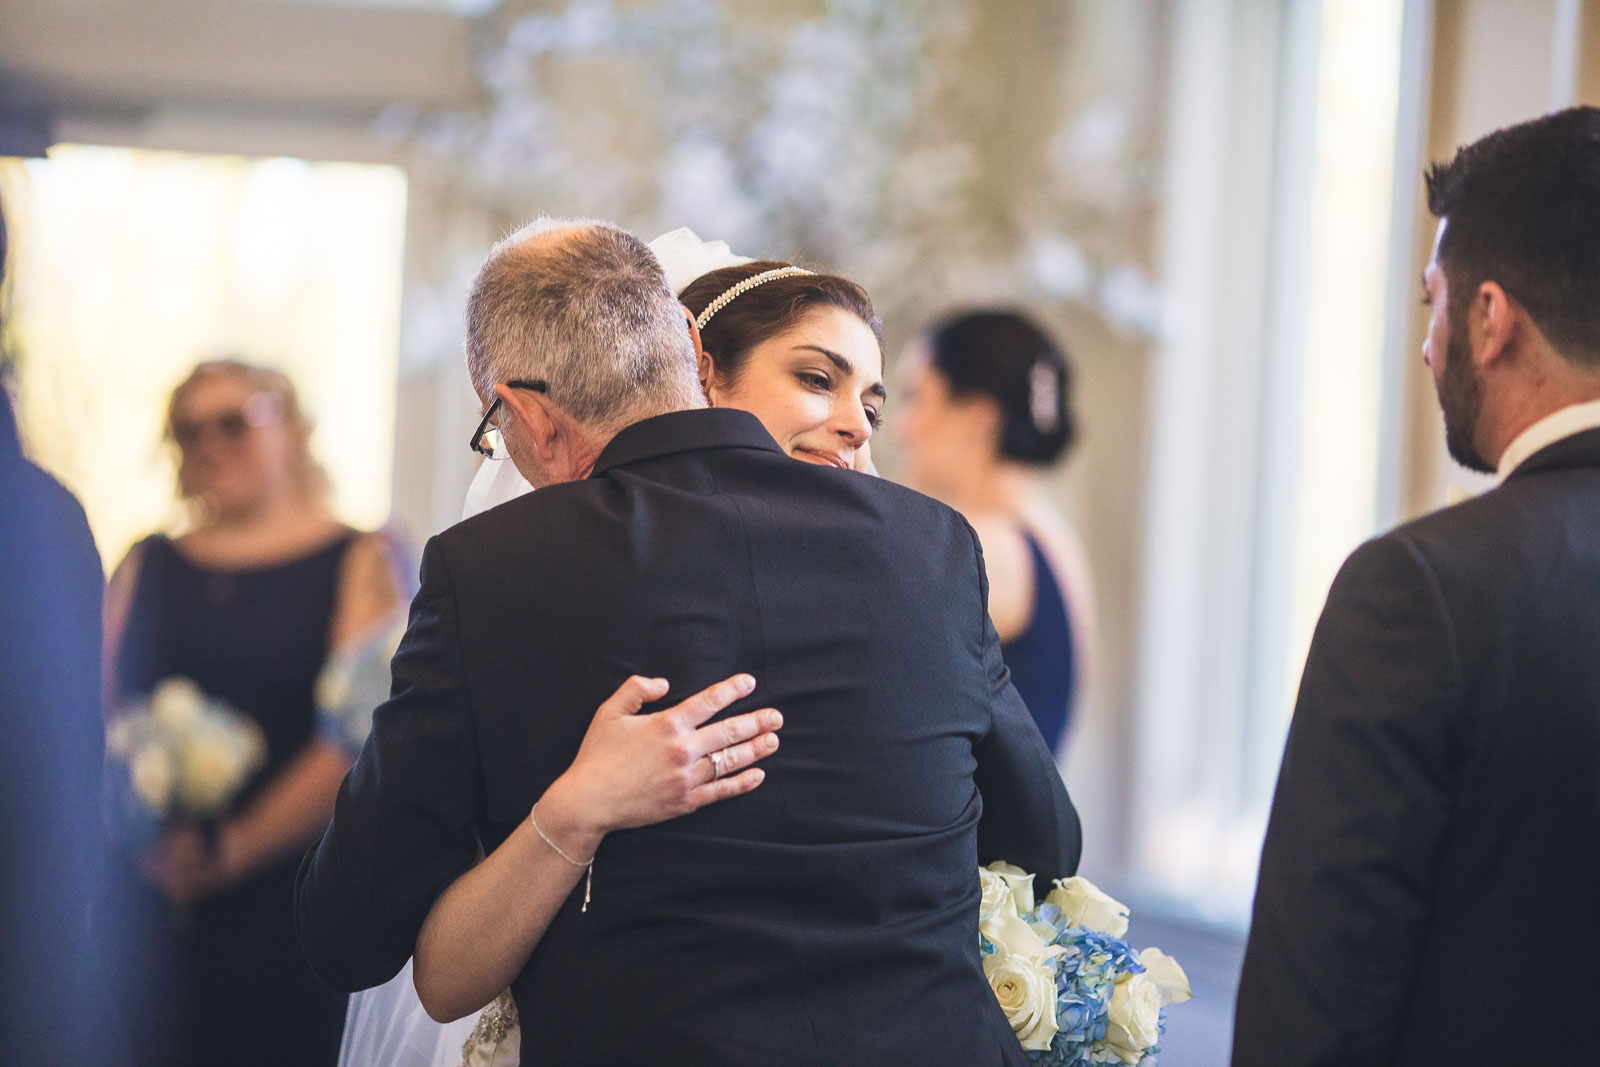 Father hugs Bride Wedding Ceremony